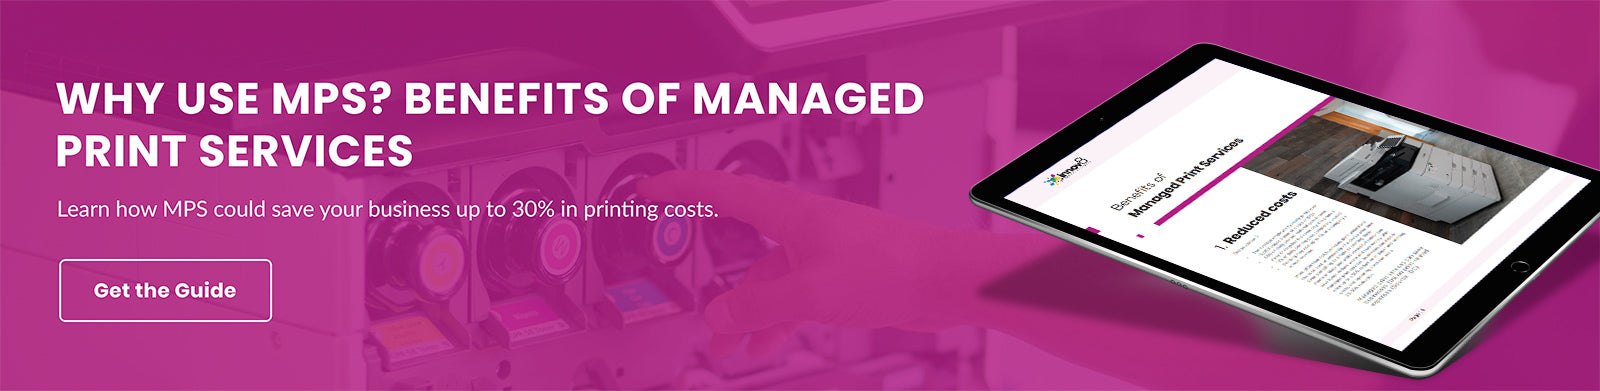 Download the innov8 Managed Print Services Guide